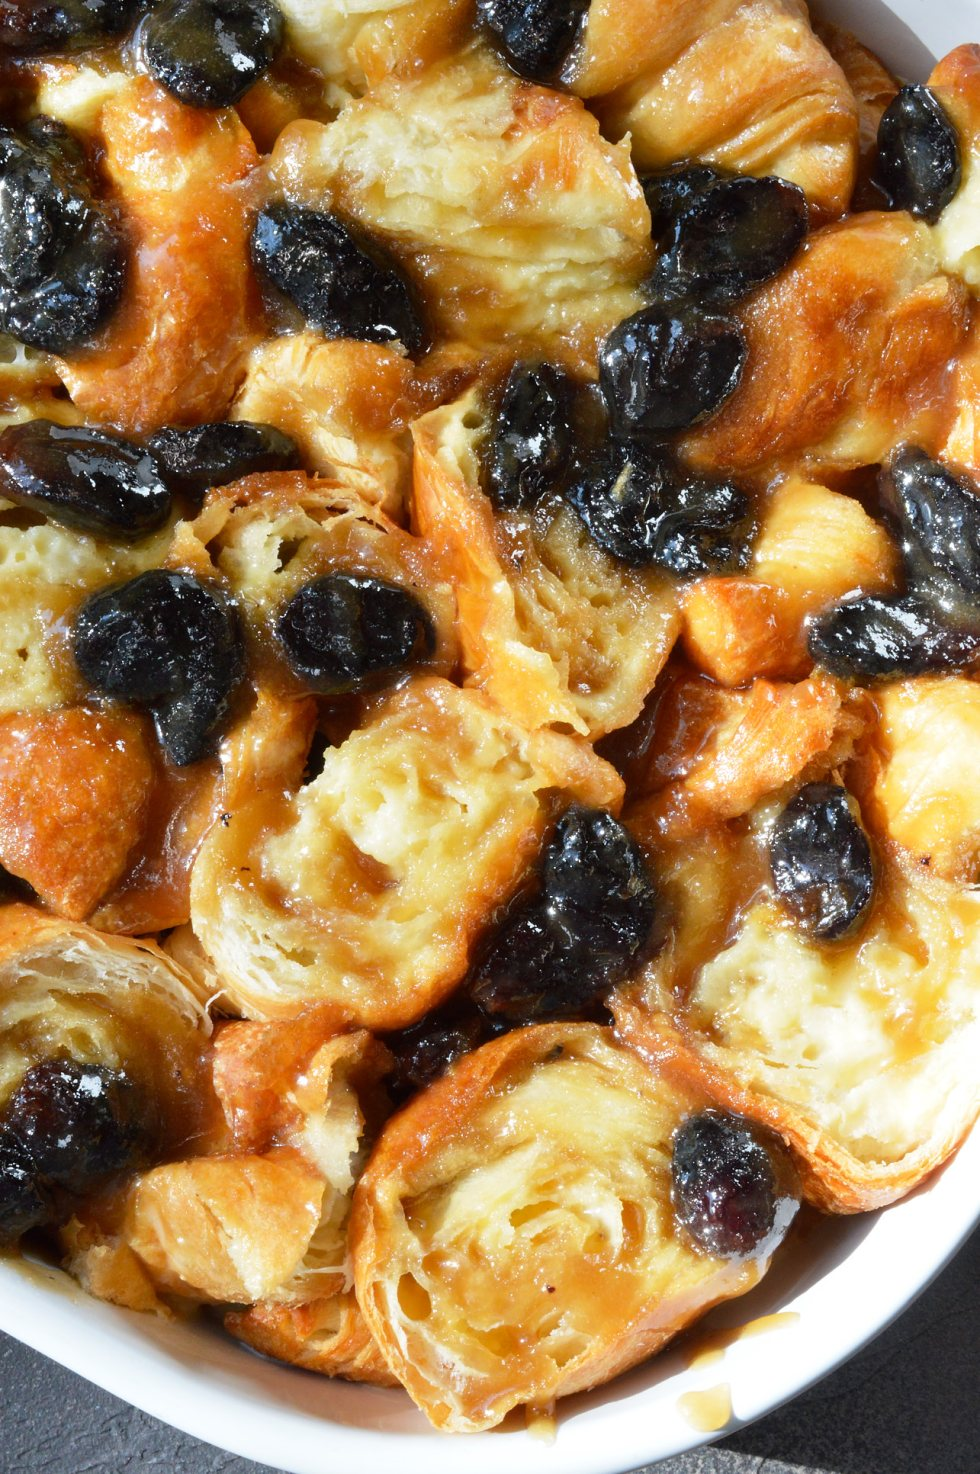 Go ahead and indulge your sweet craving with this Rum Raisin Croissant Bread Pudding Bake Recipe. Perfect for a dessert to feed a crowd or as an easy breakfast casserole. Made with buttermilk, croissants, royal raisins and rum flavor!